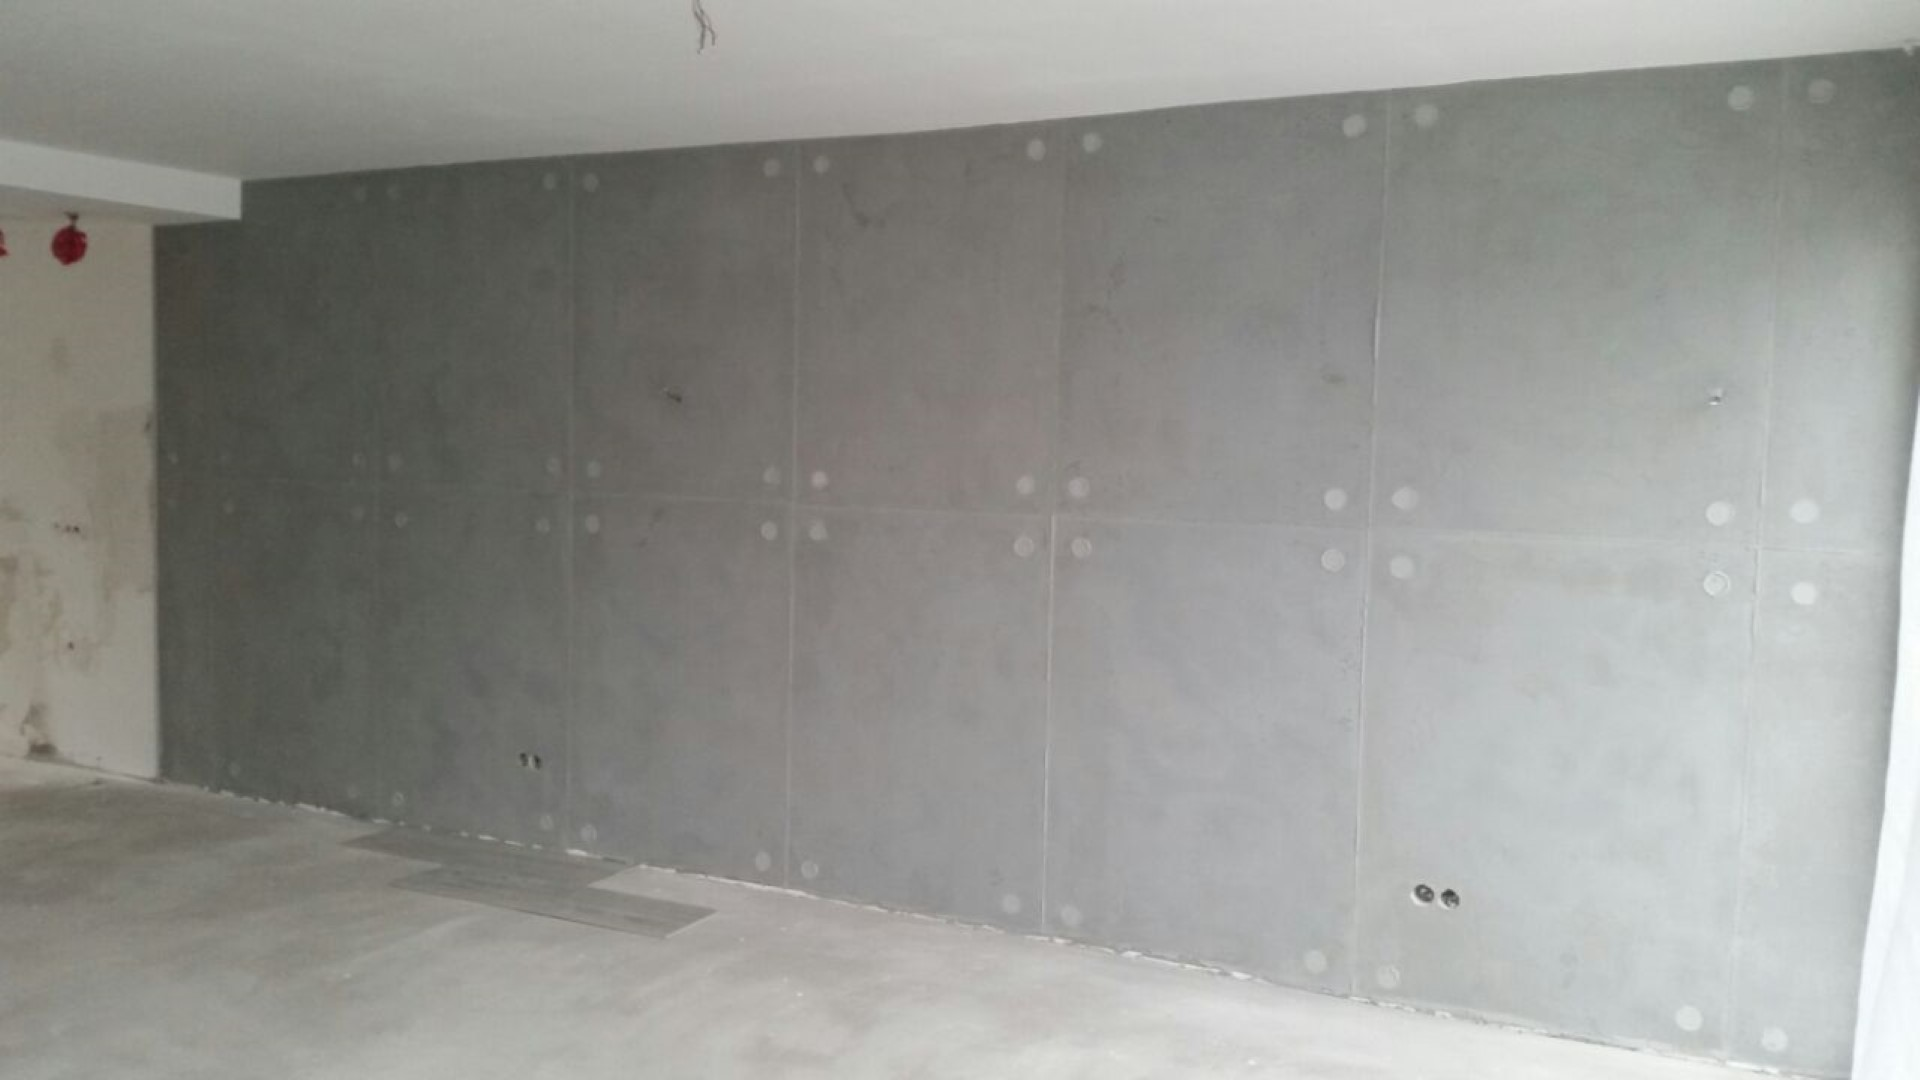 Fliesen Wände Spachteln Wand In Betonoptik Spachteln Material Spachtelmassen